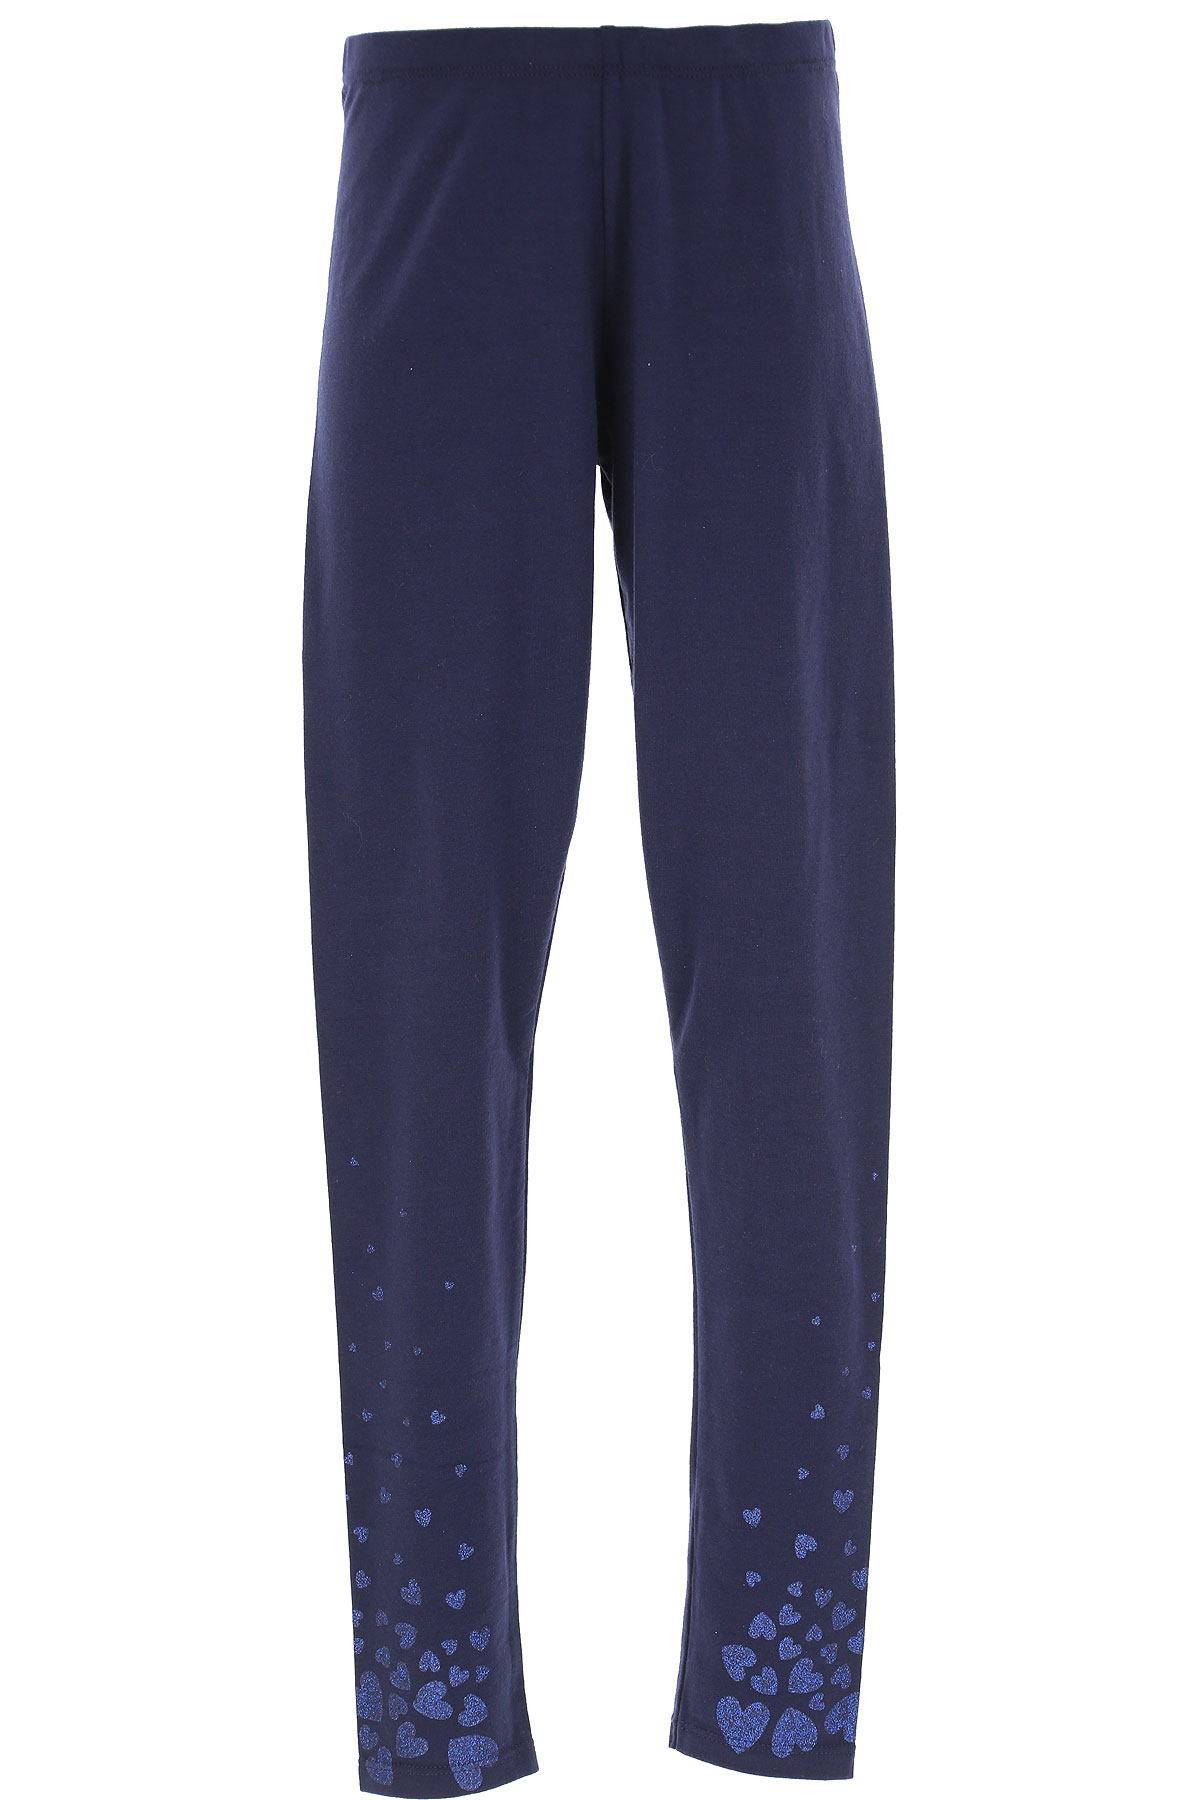 Billieblush Kids Pants for Girls On Sale, navy, polyester, 2019, 10Y 12Y 2Y 3Y 4Y 6Y